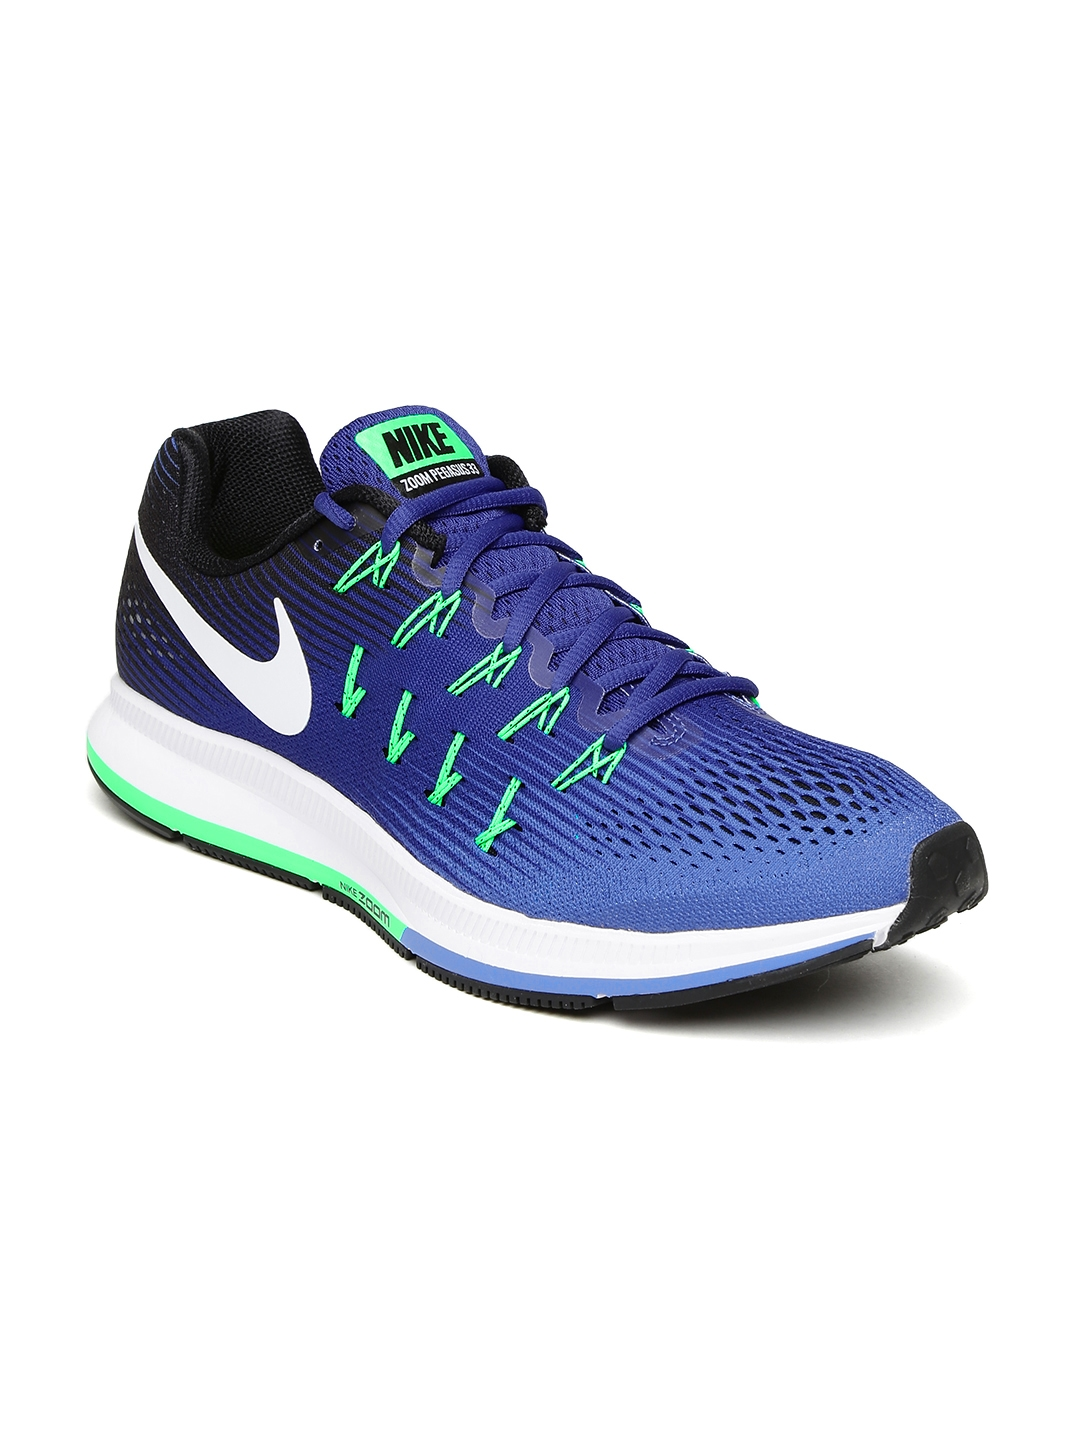 0ceb7d223036 Buy Nike Men Blue Air Zoom Pegasus 33 Running Shoes - Sports Shoes ...